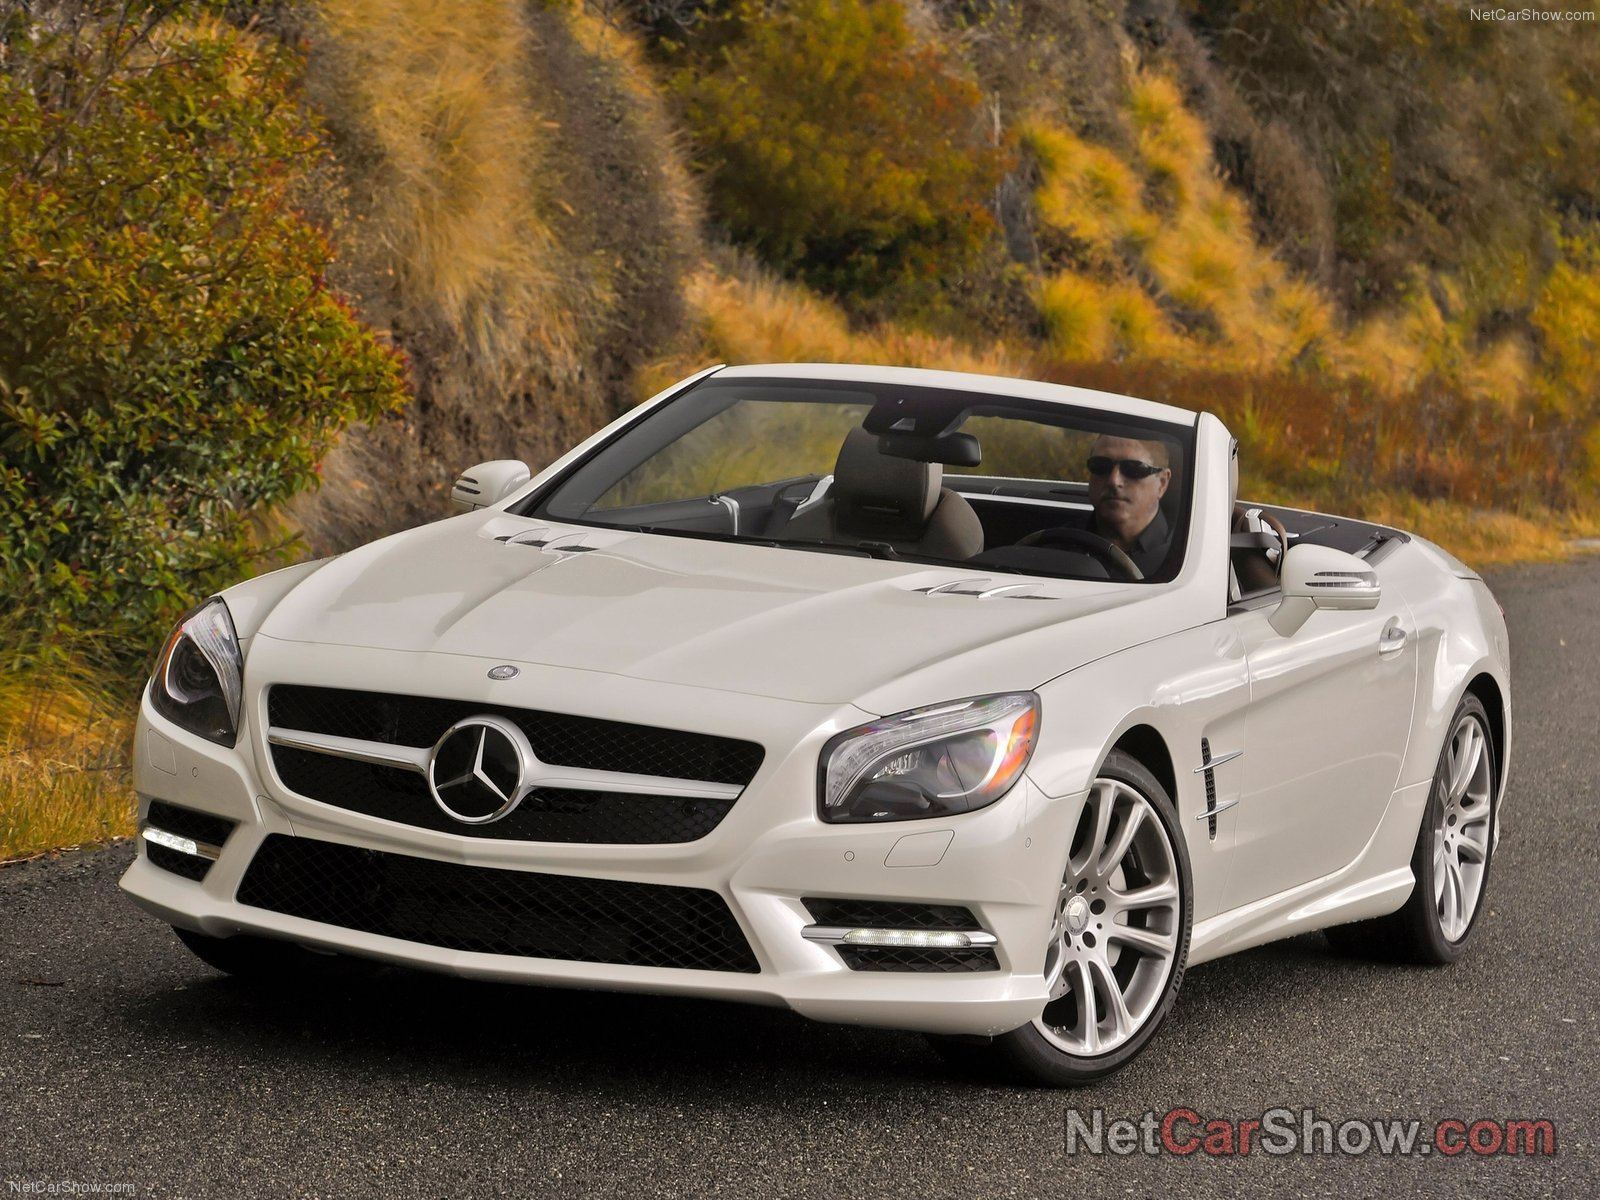 Mercedes benz sl550 photos photogallery with 38 pics for Mercedes benz sl550 for sale